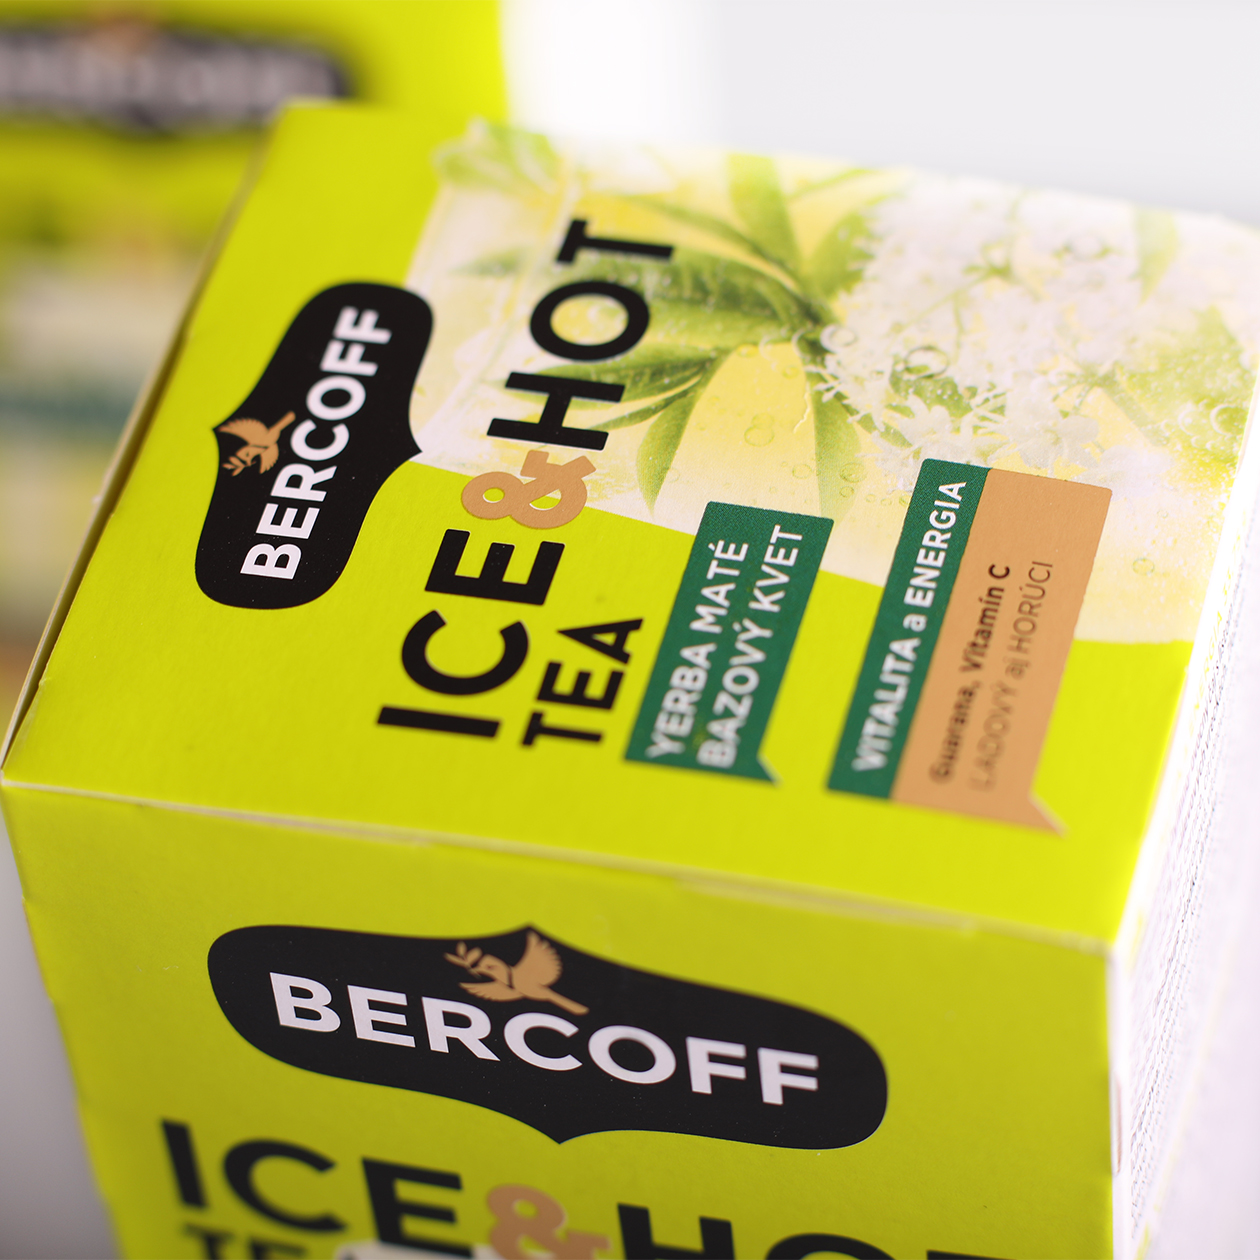 bercoff ice hot tea